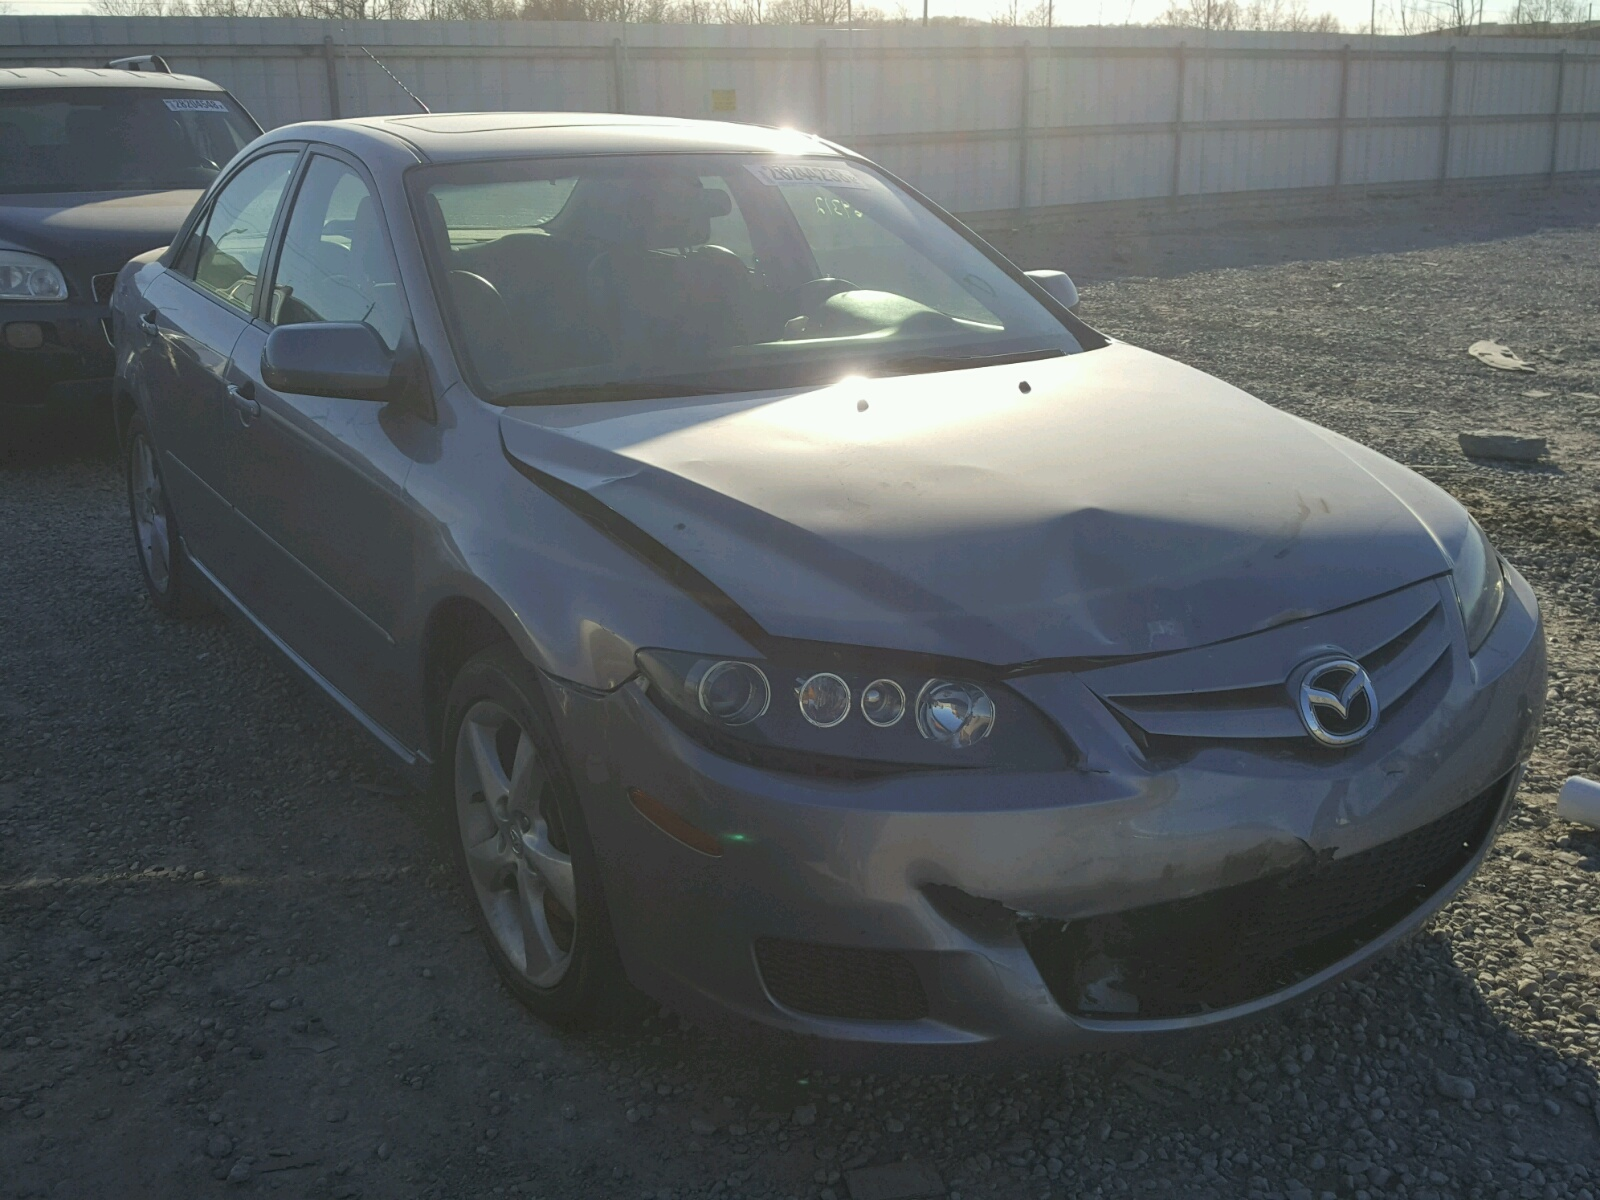 auto lot of gray in ks on copart sale certificate auctions i en kansas carfinder city mazda online title